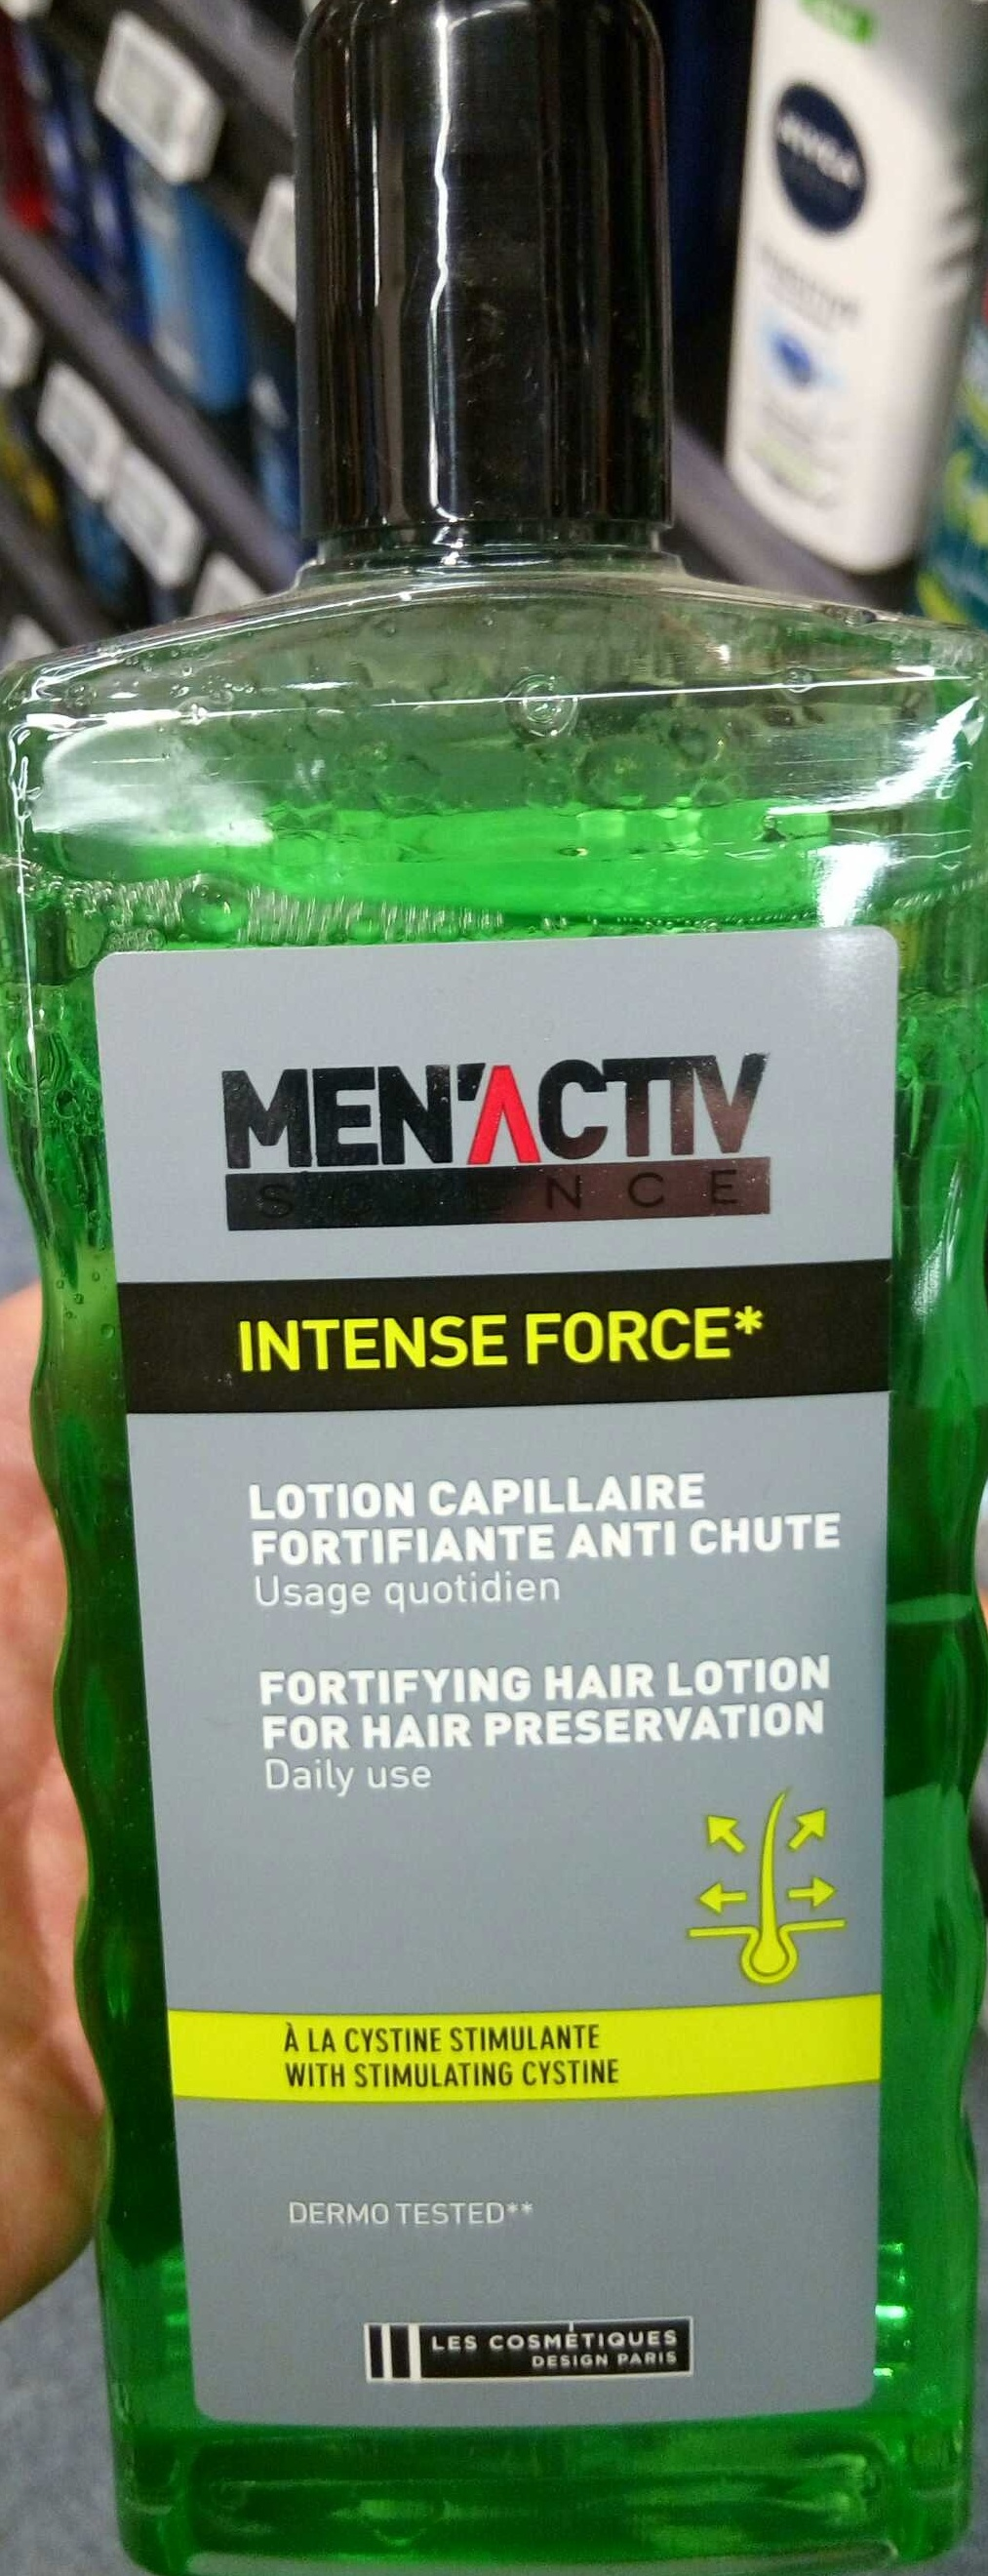 Intense Force Lotion Capillaire fortifiante anti chute - Product